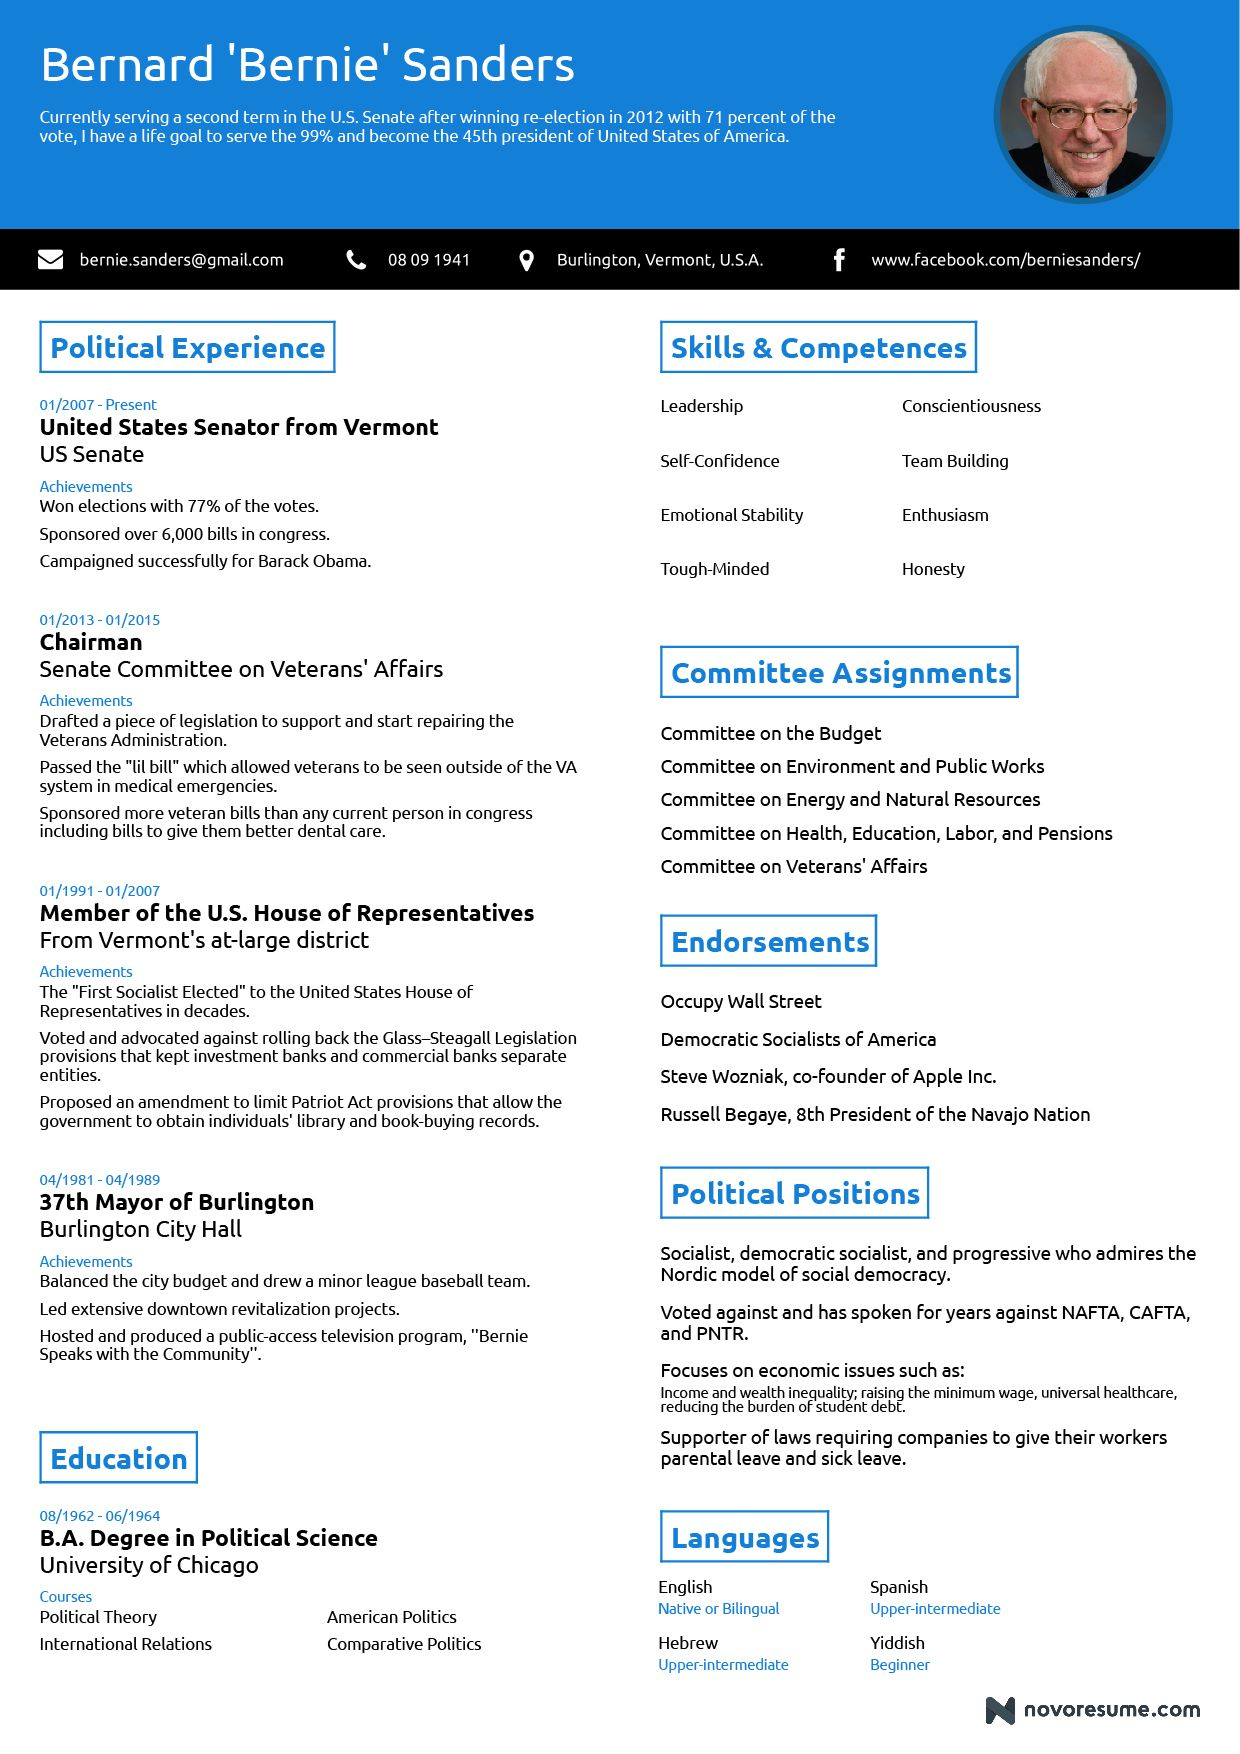 One Page Professional Resume Highlighting The Professional